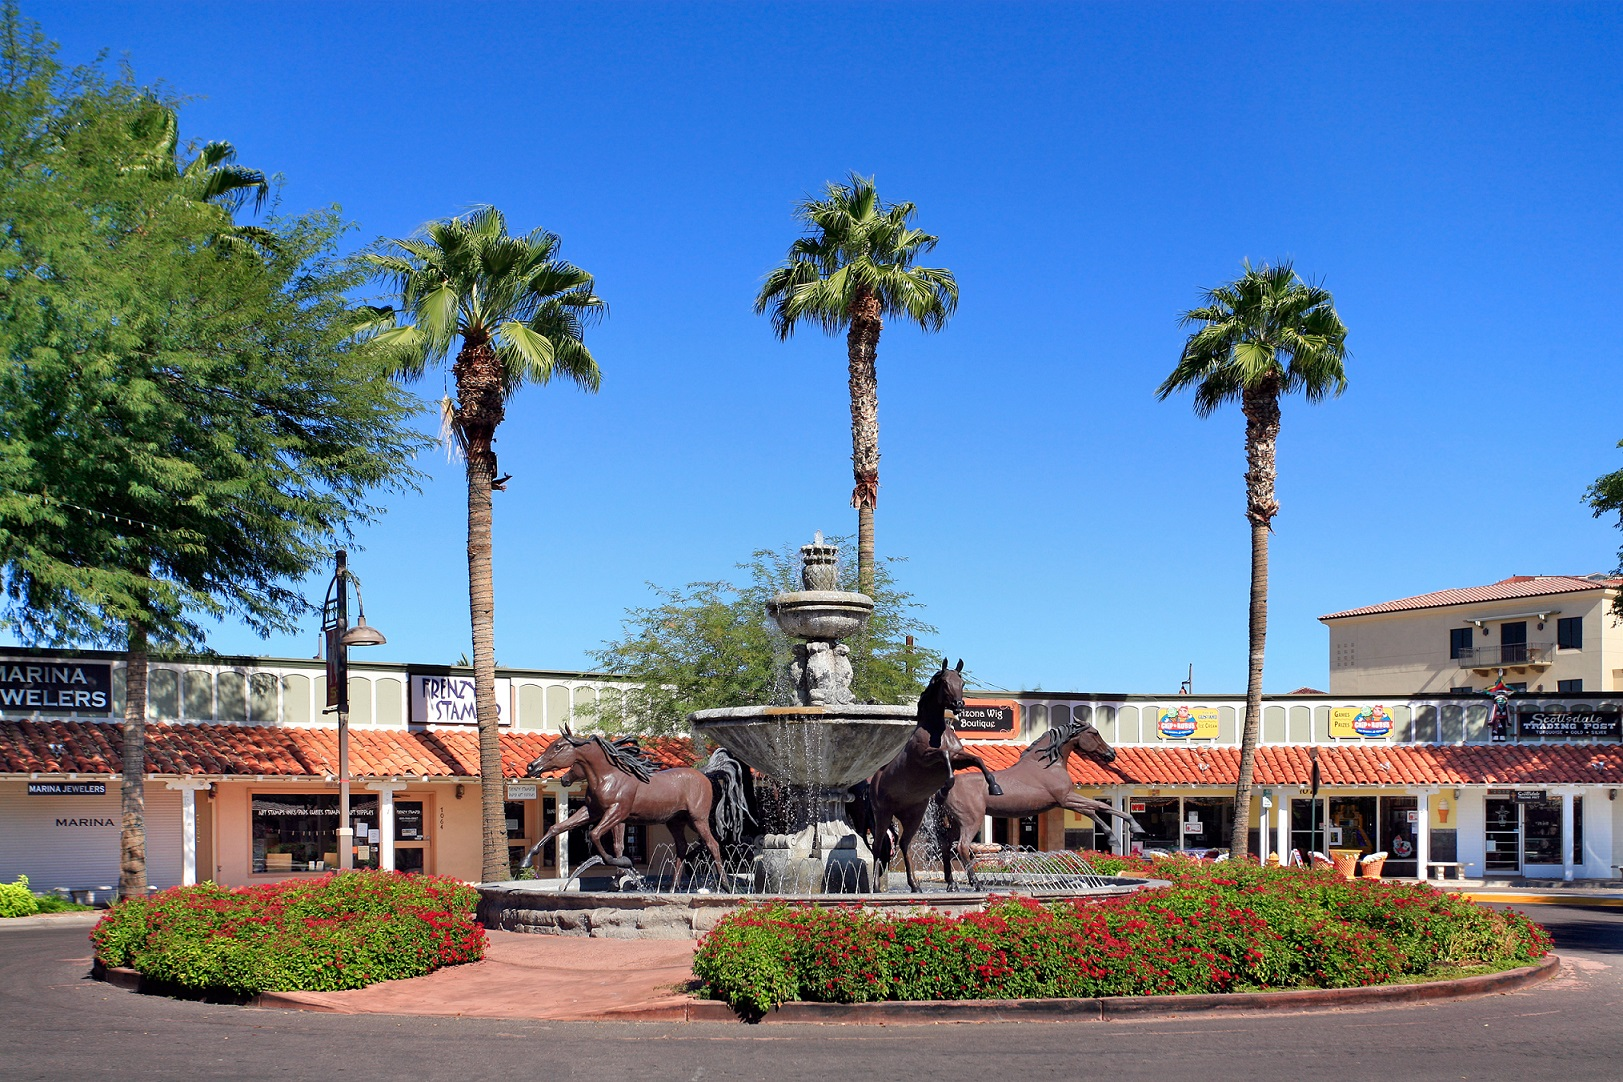 Are you looking to move to Scottsdale? We've found the best suburbs for common moving needs. Which one is right for you?